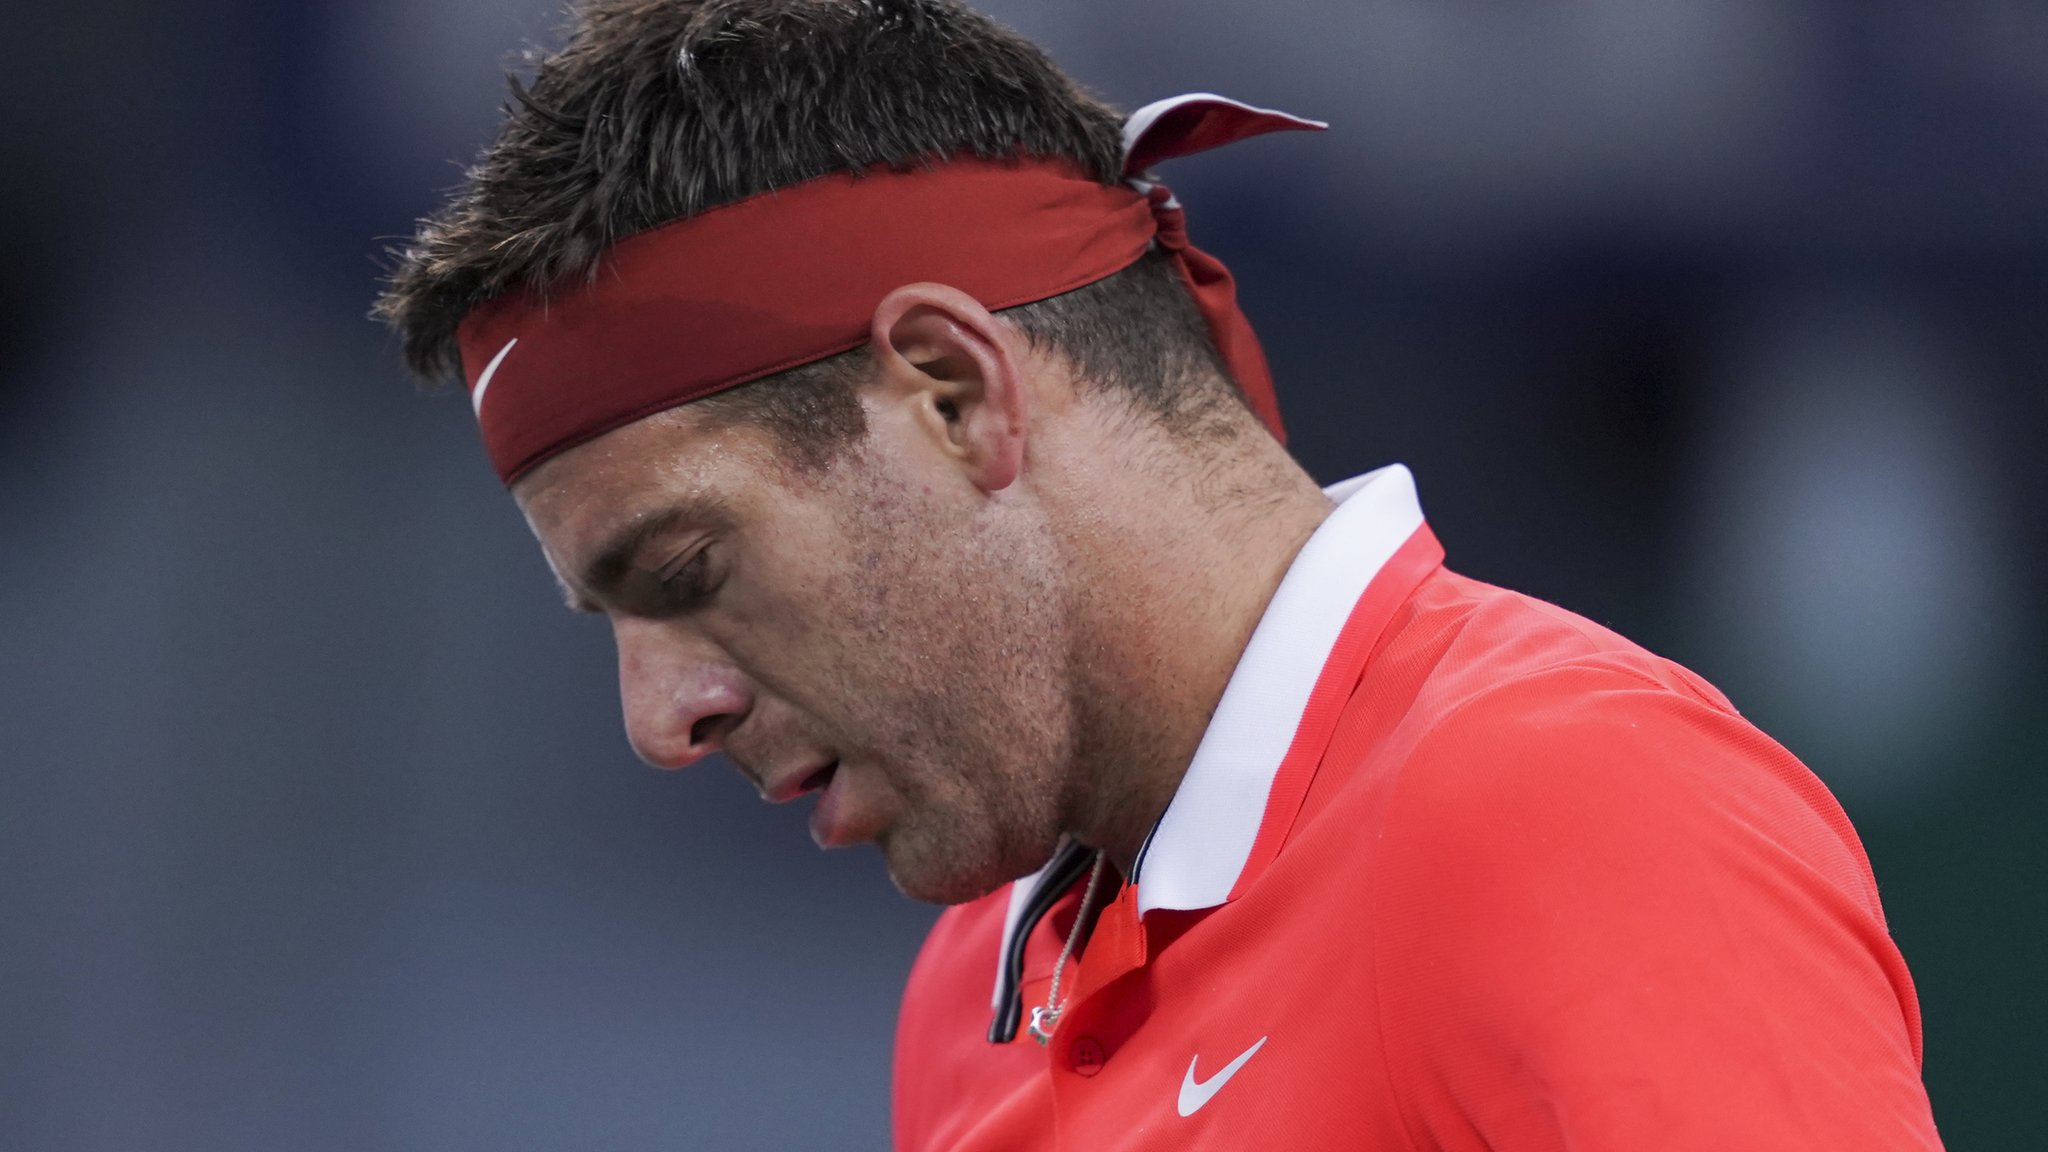 Del Potro could miss rest of season with fractured kneecap